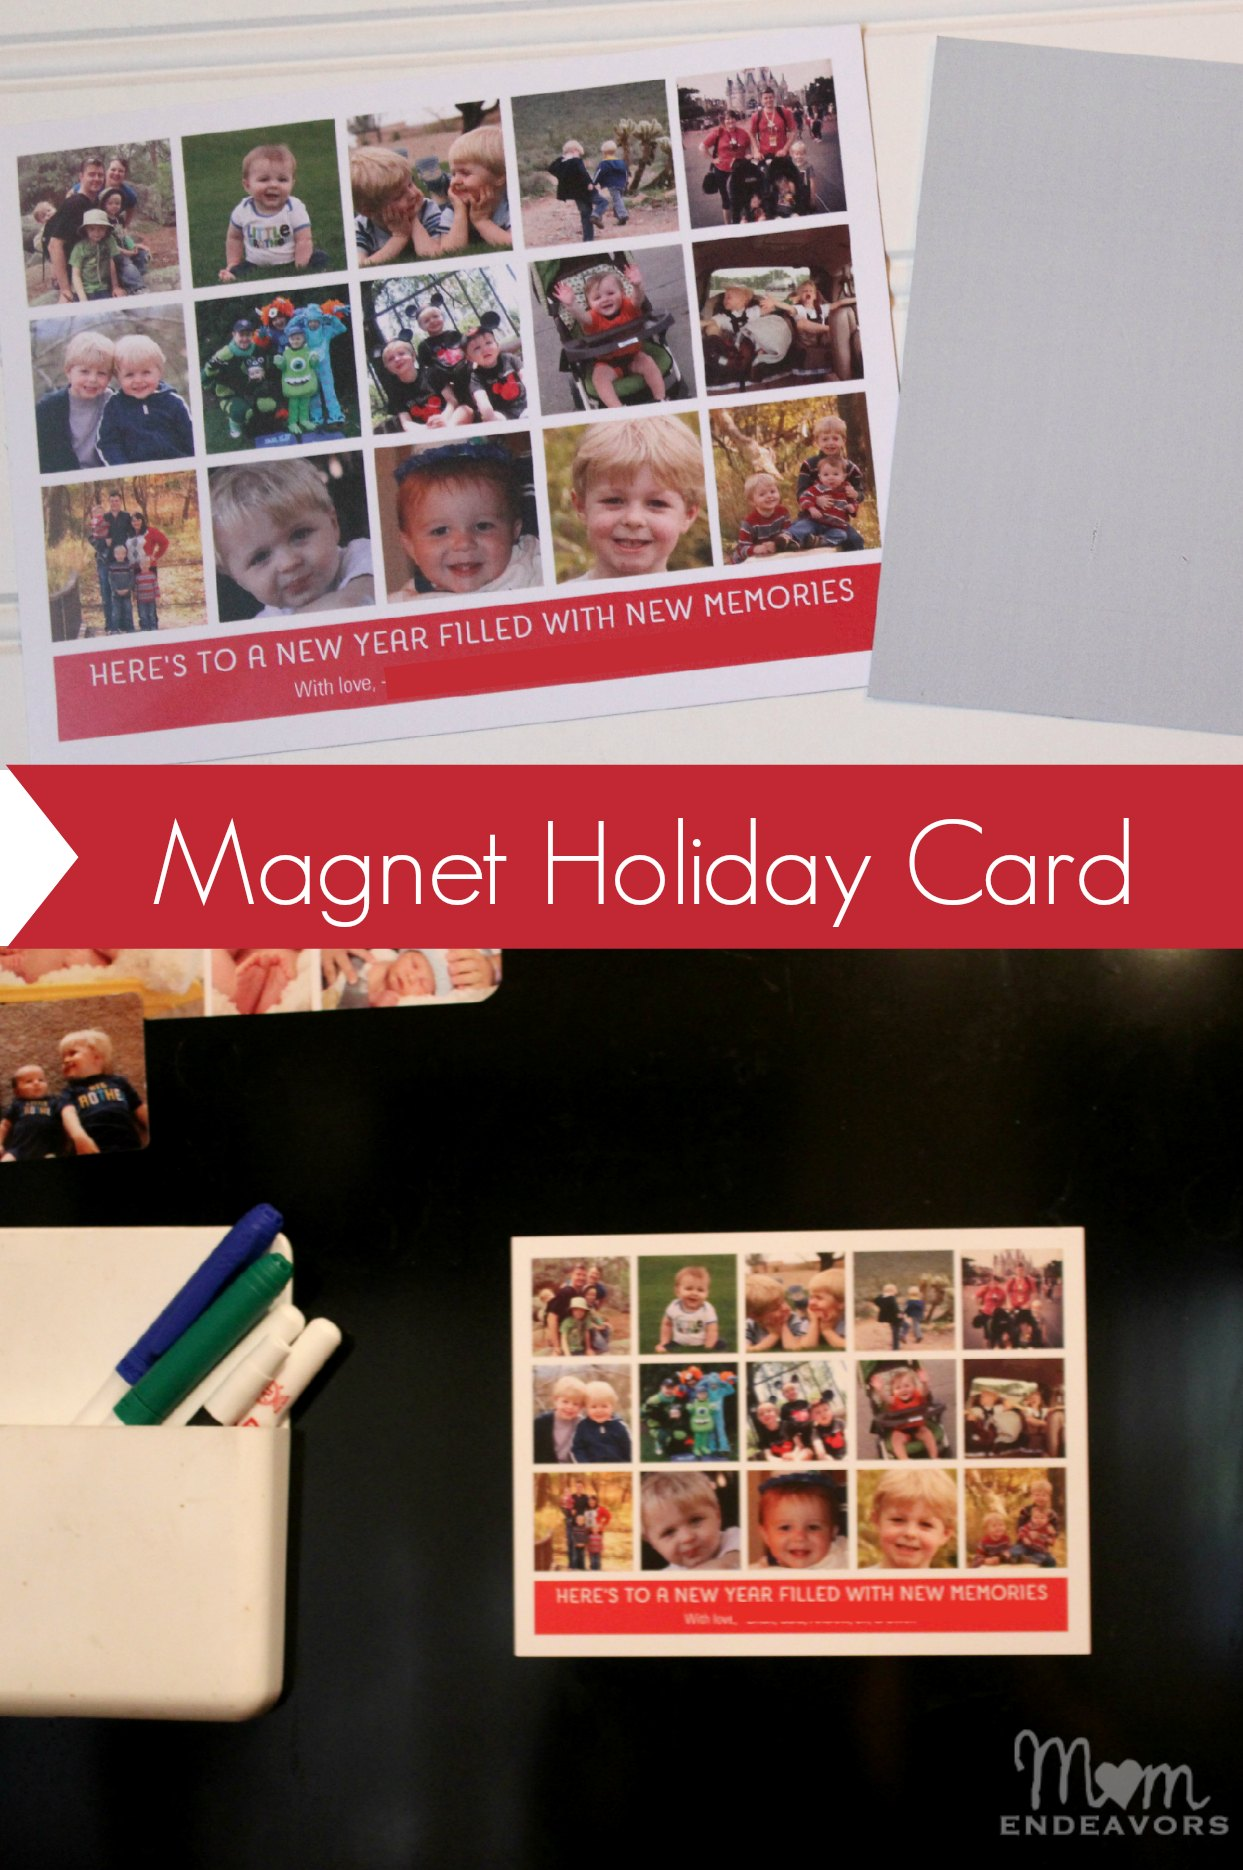 Magnet Holiday Card